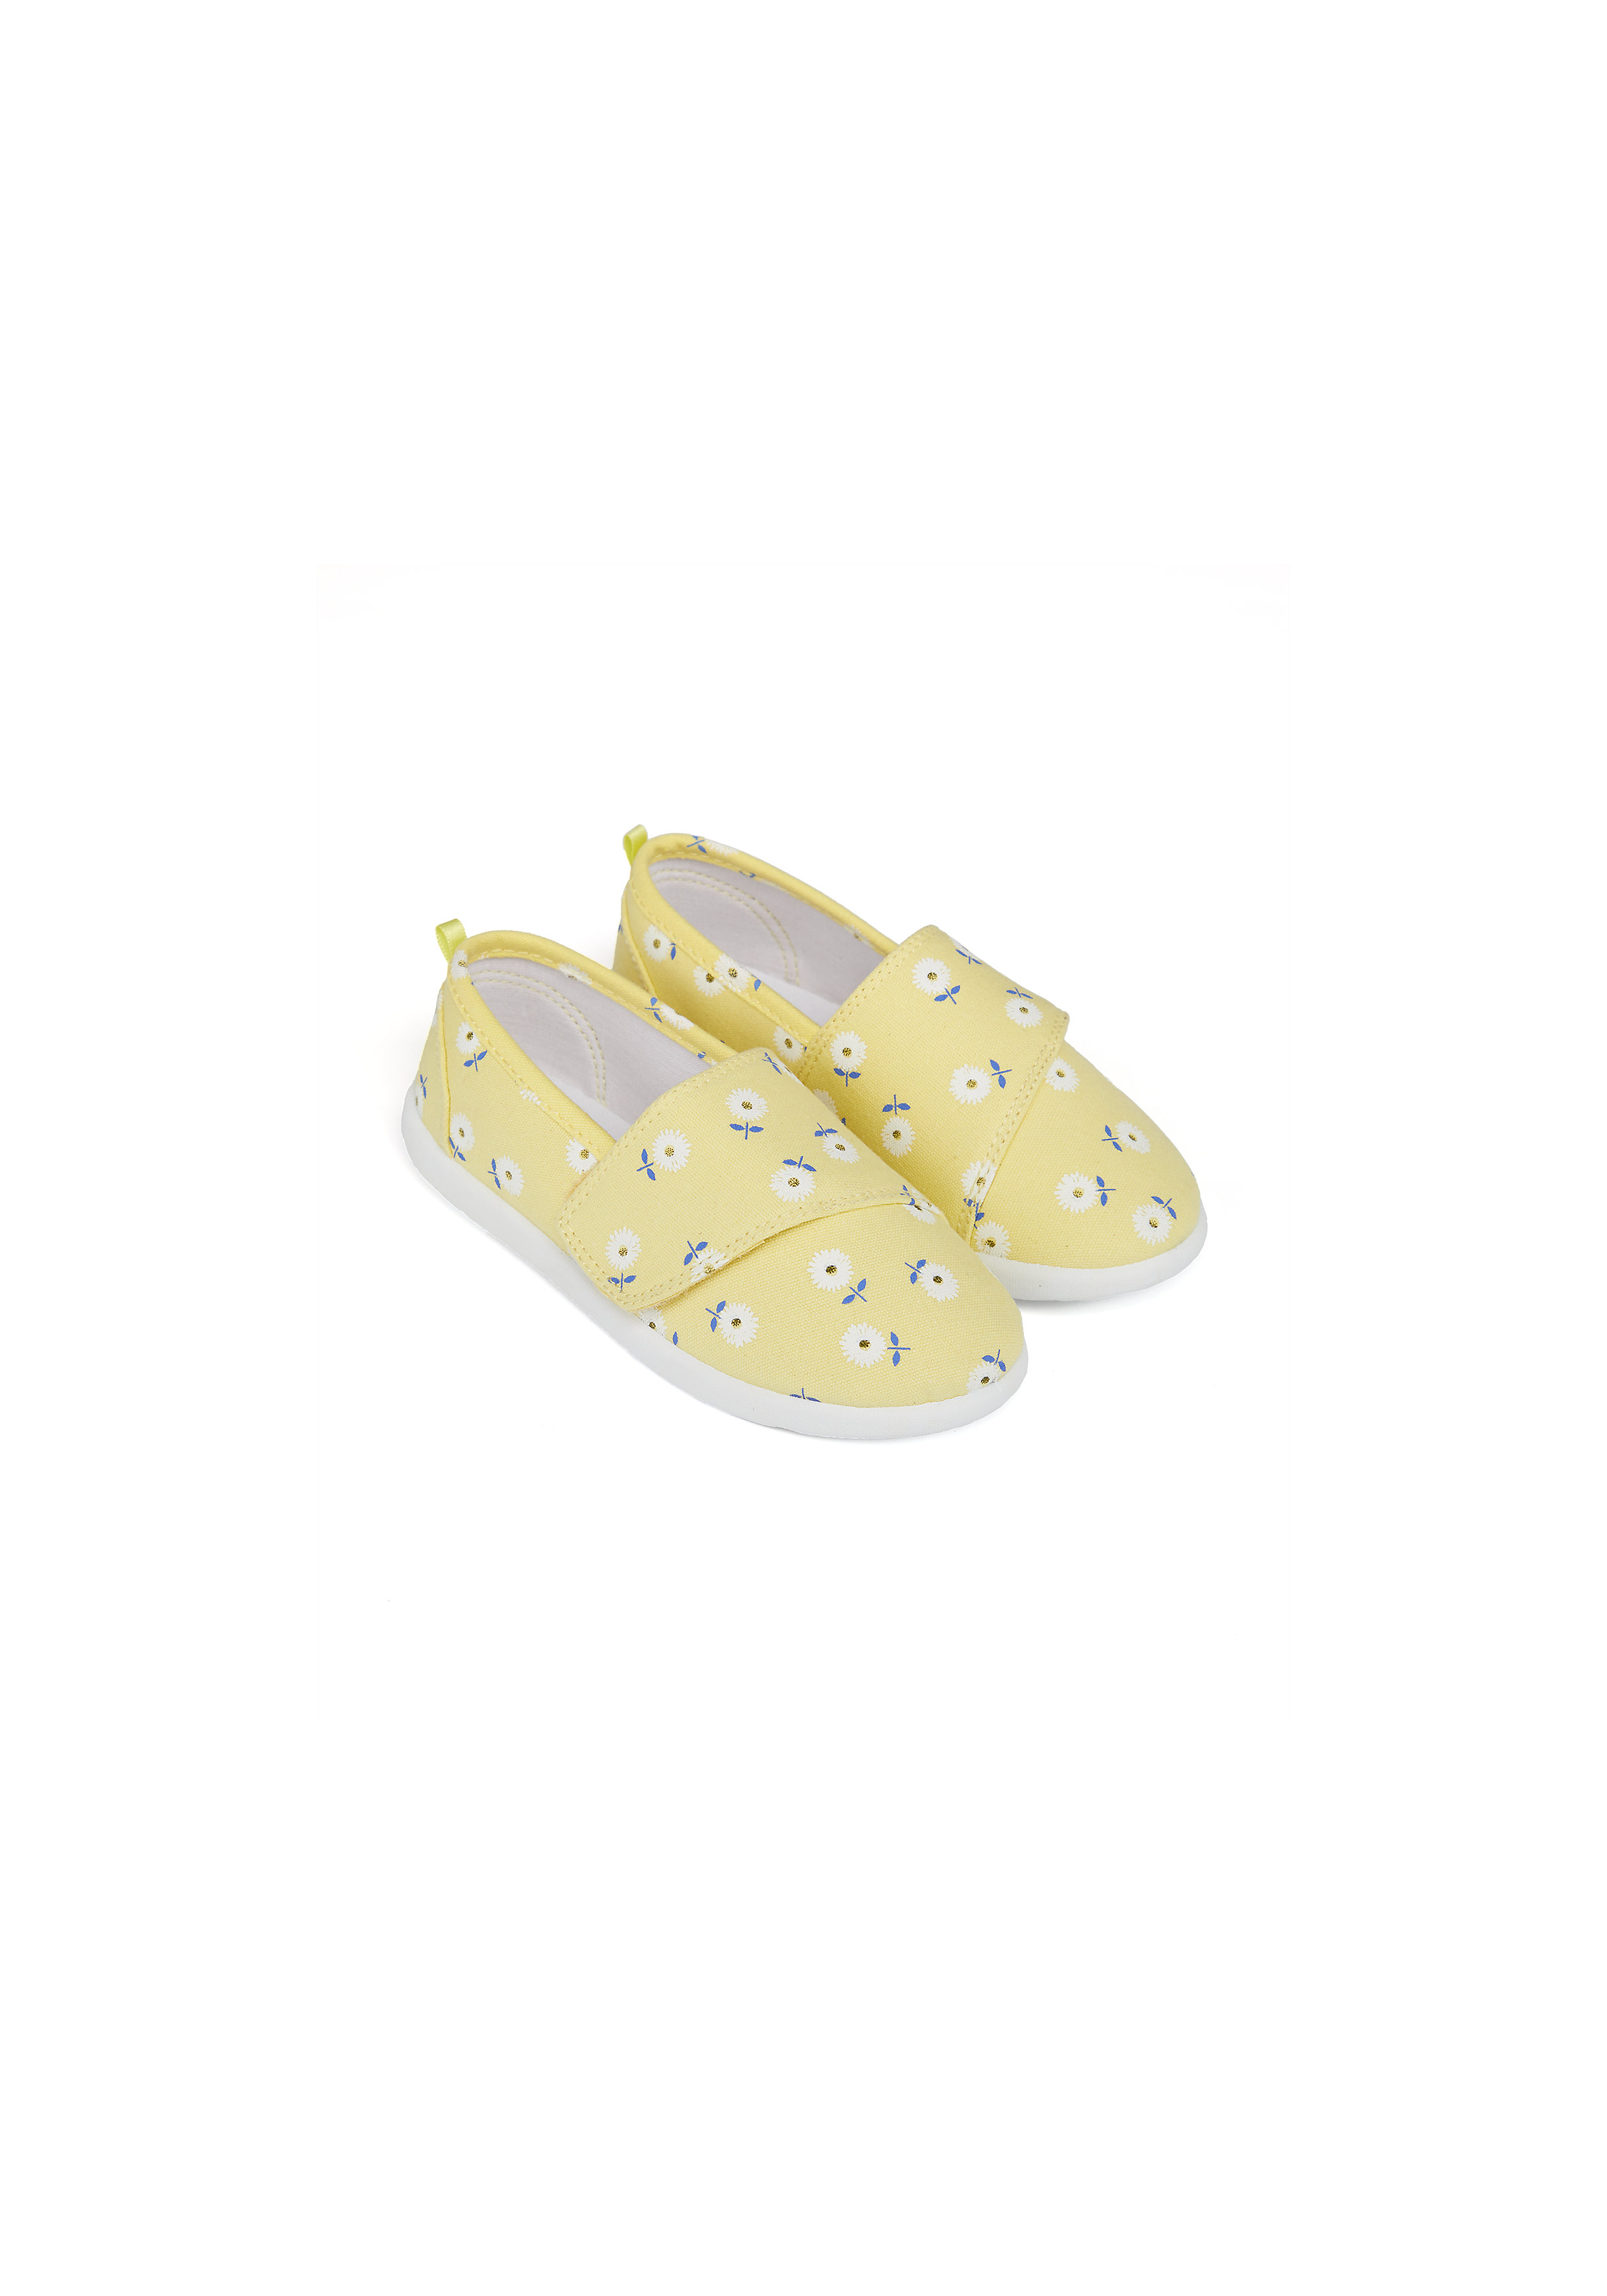 Mothercare | Girls Canvas Shoes Floral Print - Yellow